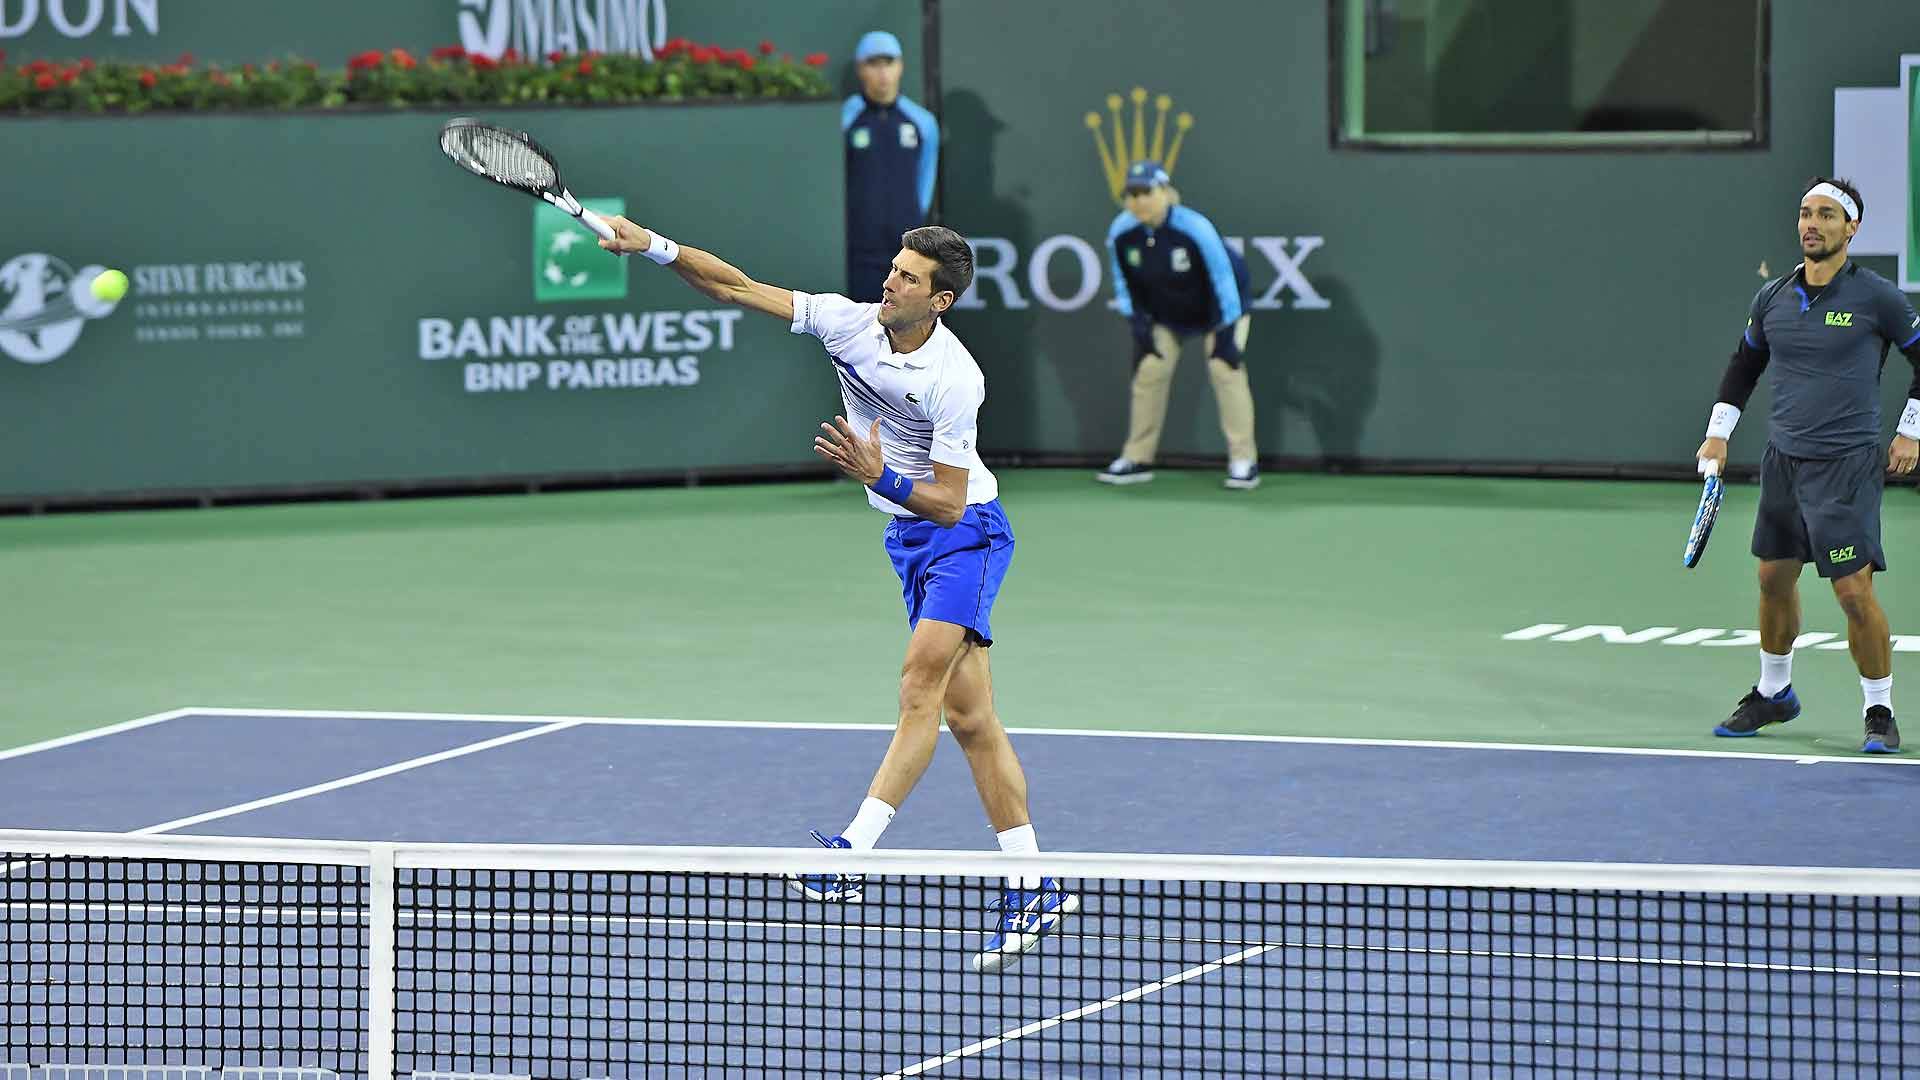 Novak Djokovic hits an overhead as partner Fabio Fognini looks on in the second round of doubles at the 2019 BNP Paribas Open